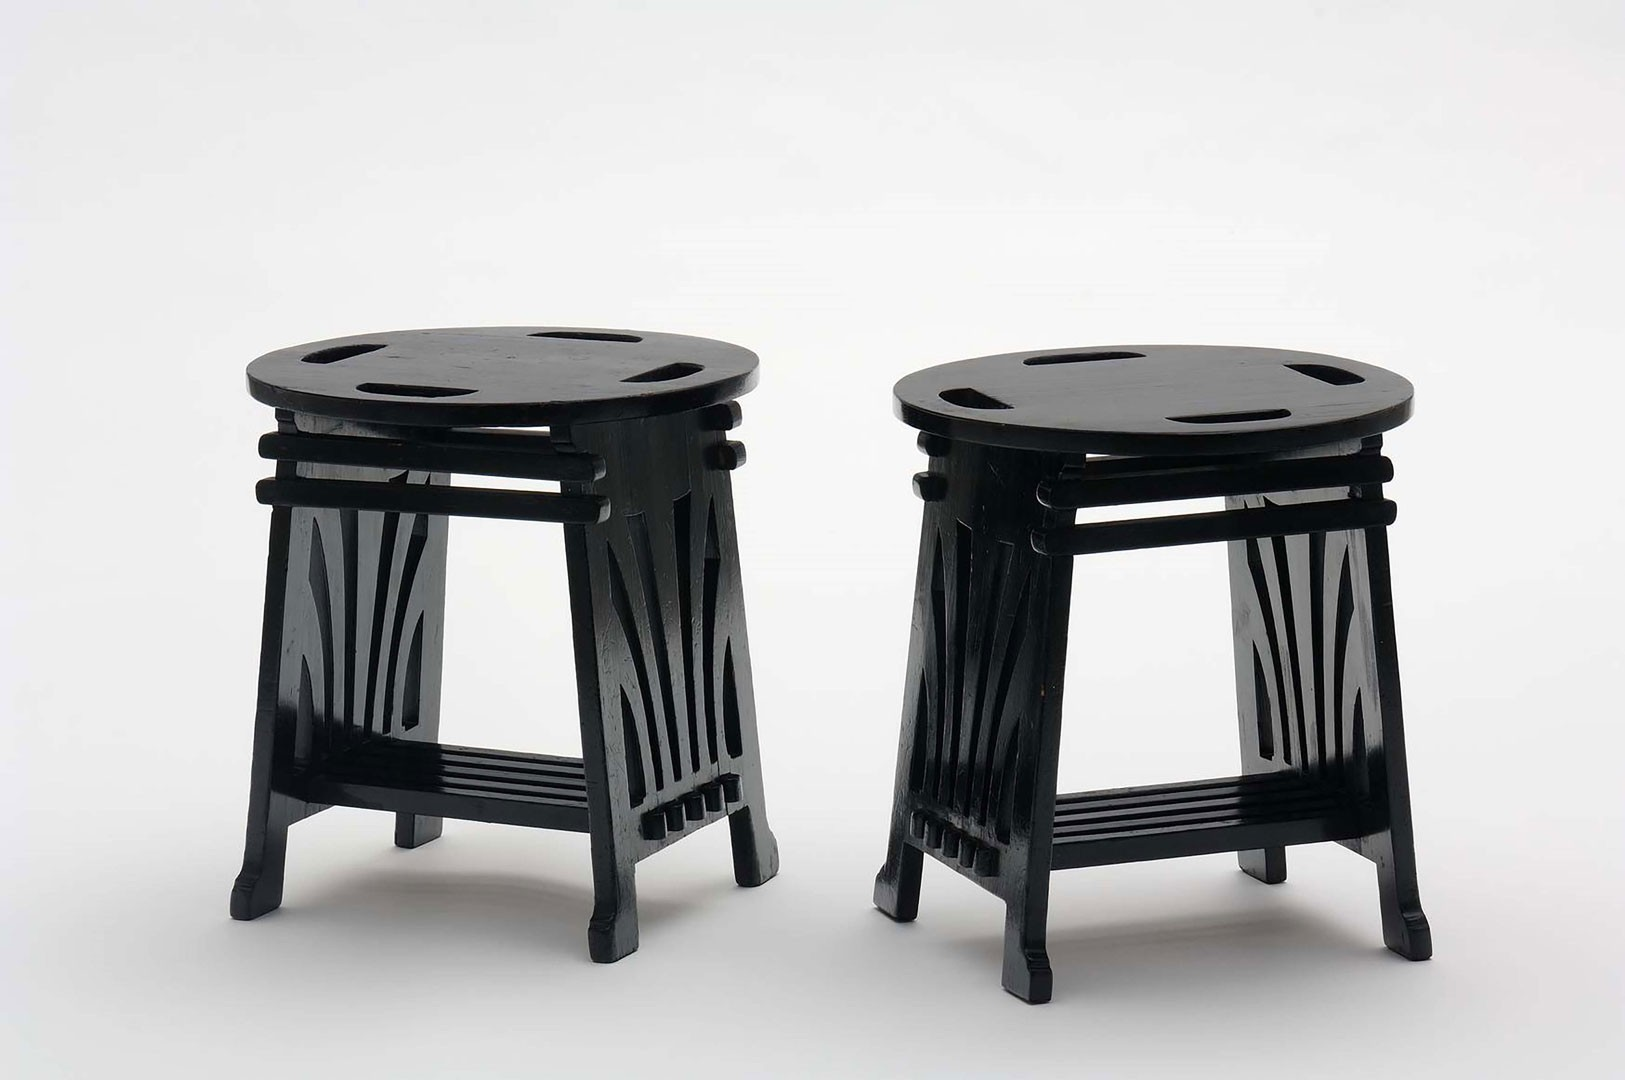 <BODY>Josef Hoffmann, Two stools from Koloman Moser's studio furniture, 1898<br />© MAK/Georg Mayer<br /><br /></BODY>